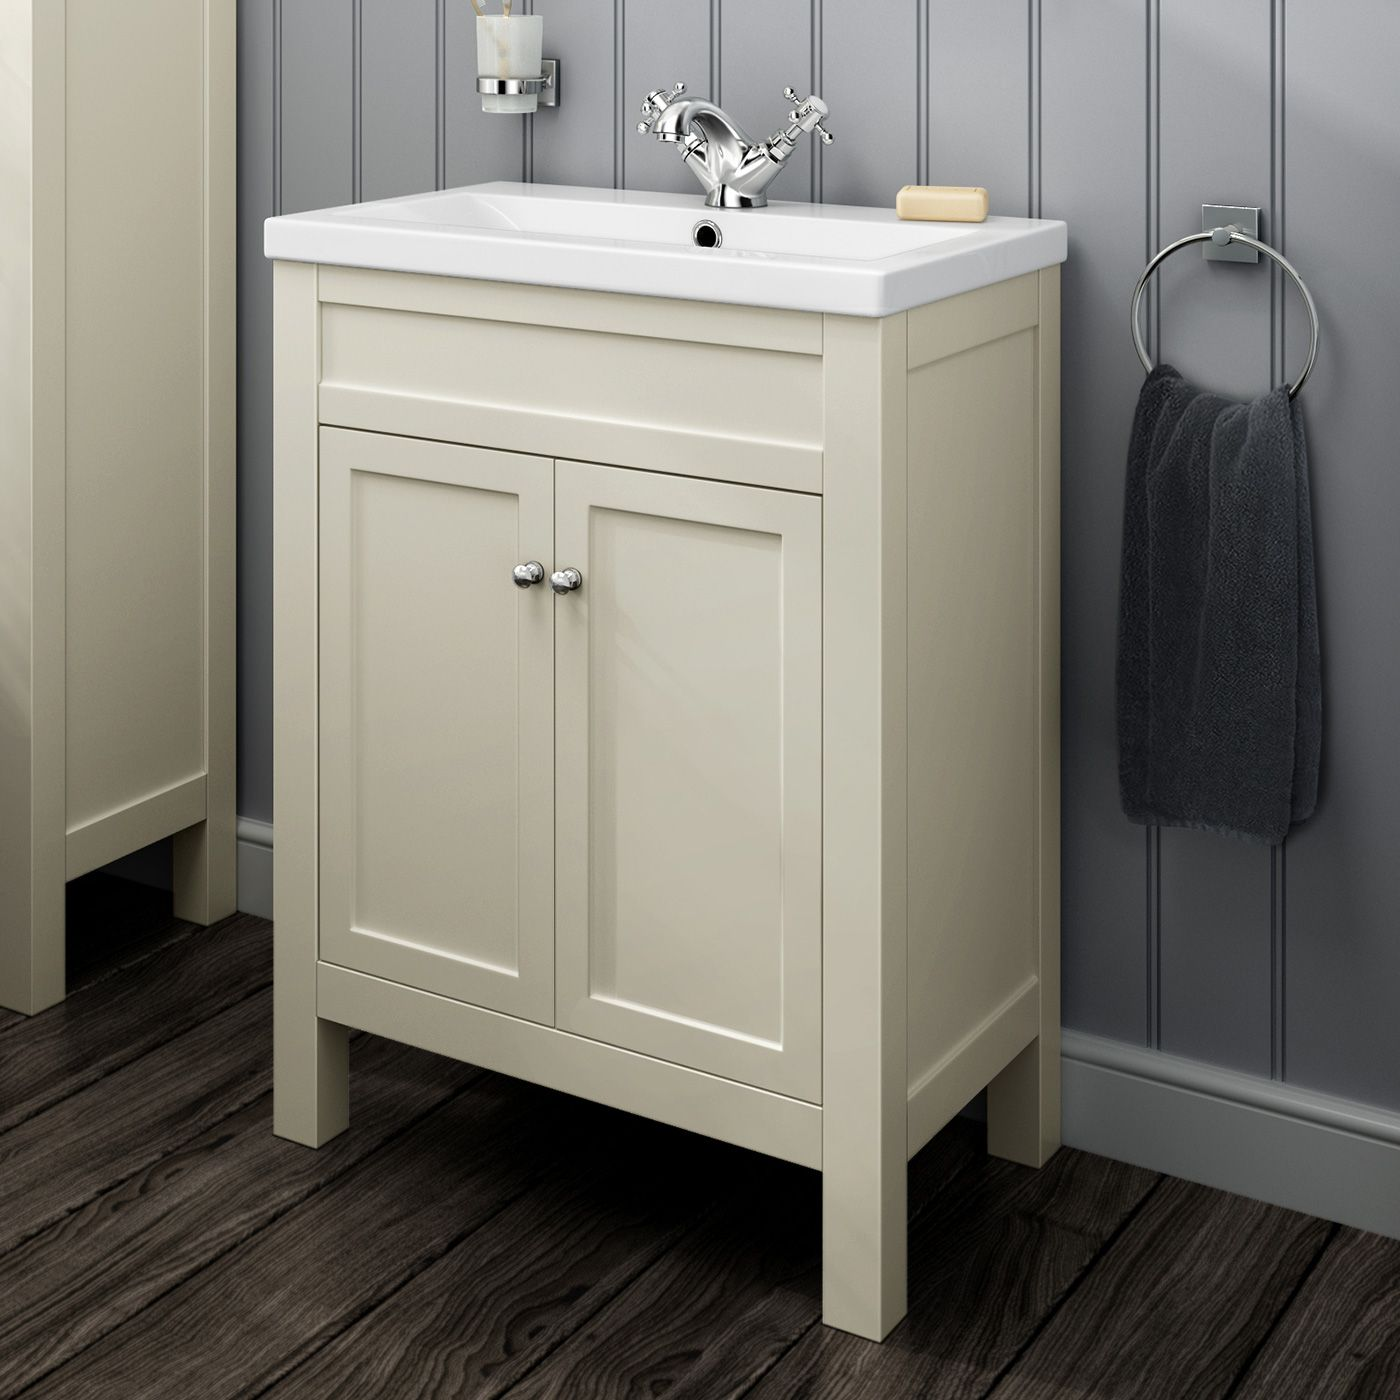 600mm Traditional Cream Bathroom Furniture Storage Vanity Unit